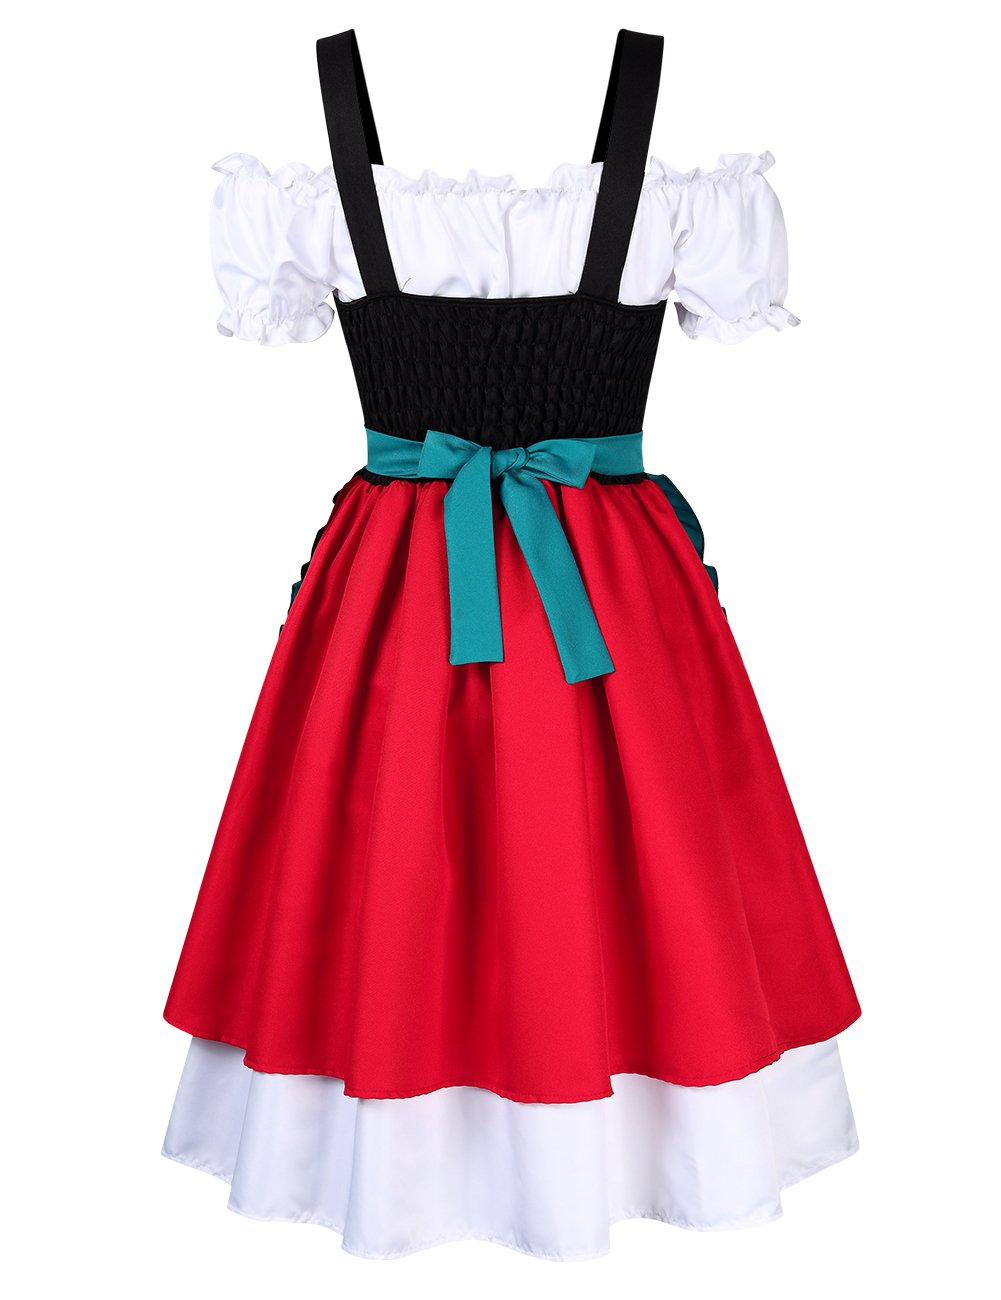 GloryStar Women's 3 Pcs German Dirndl Serving Wench Bavarian Oktoberfest Adult Costumes (S, Red/Green) by GloryStar (Image #5)